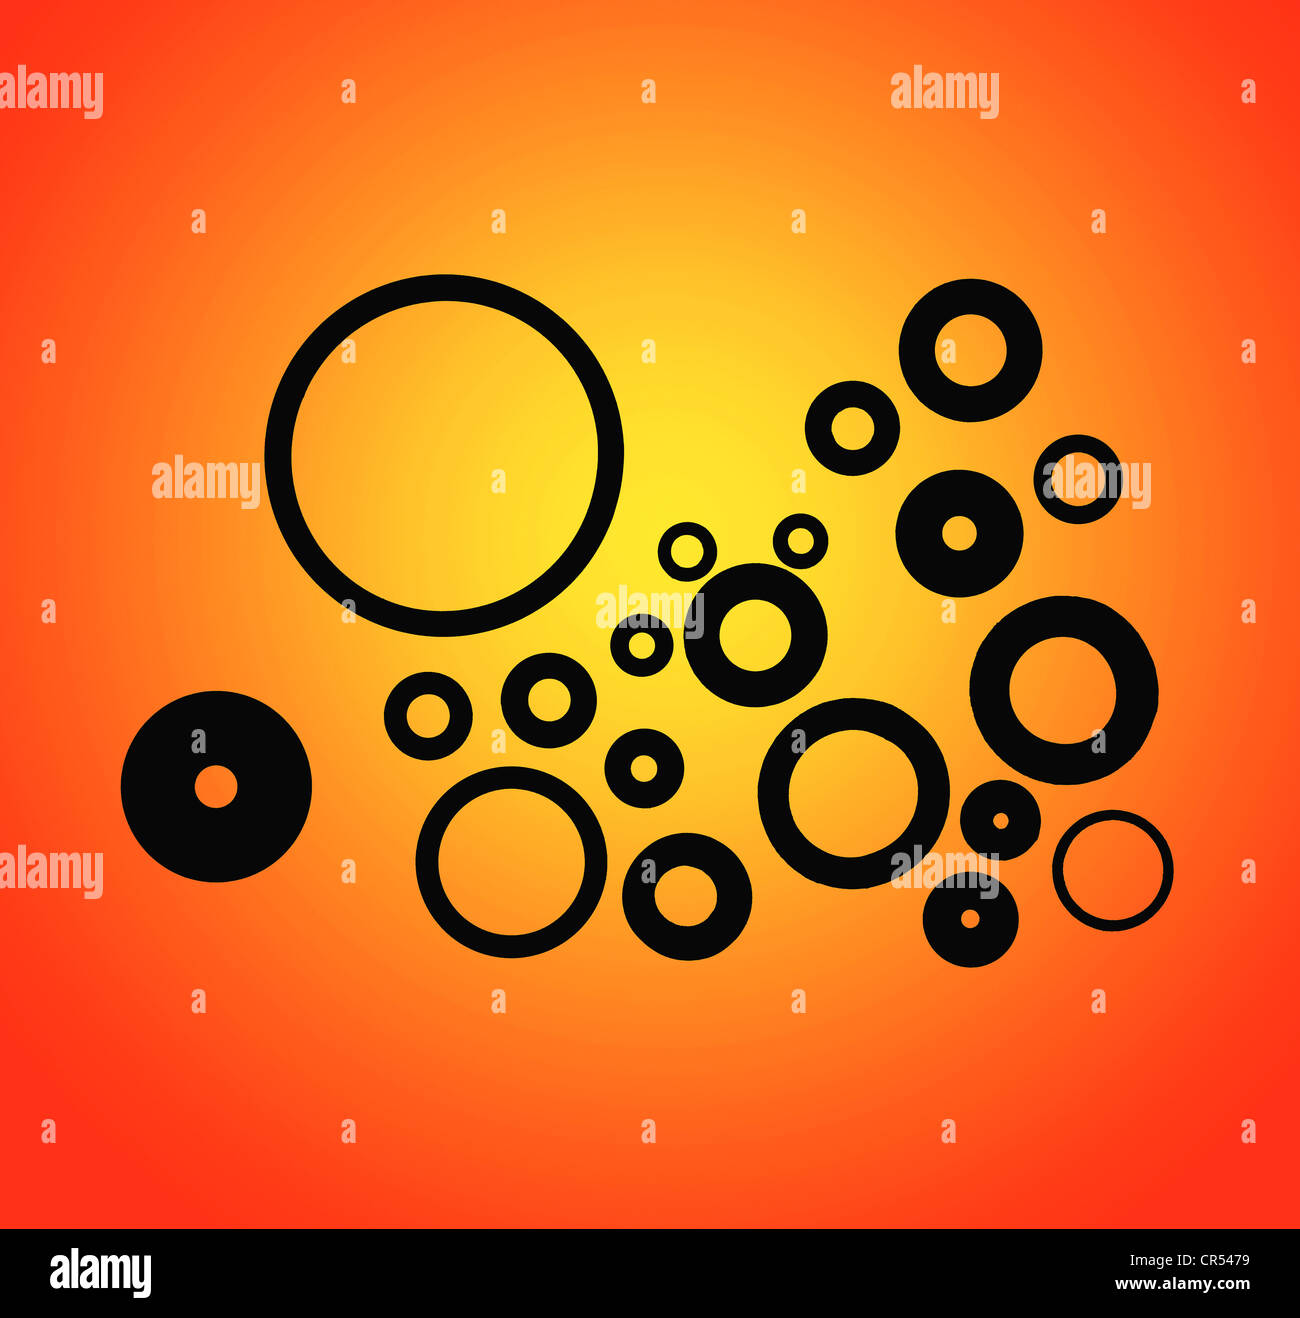 A back lit graduated background image of washers and 'O' rings - Stock Image